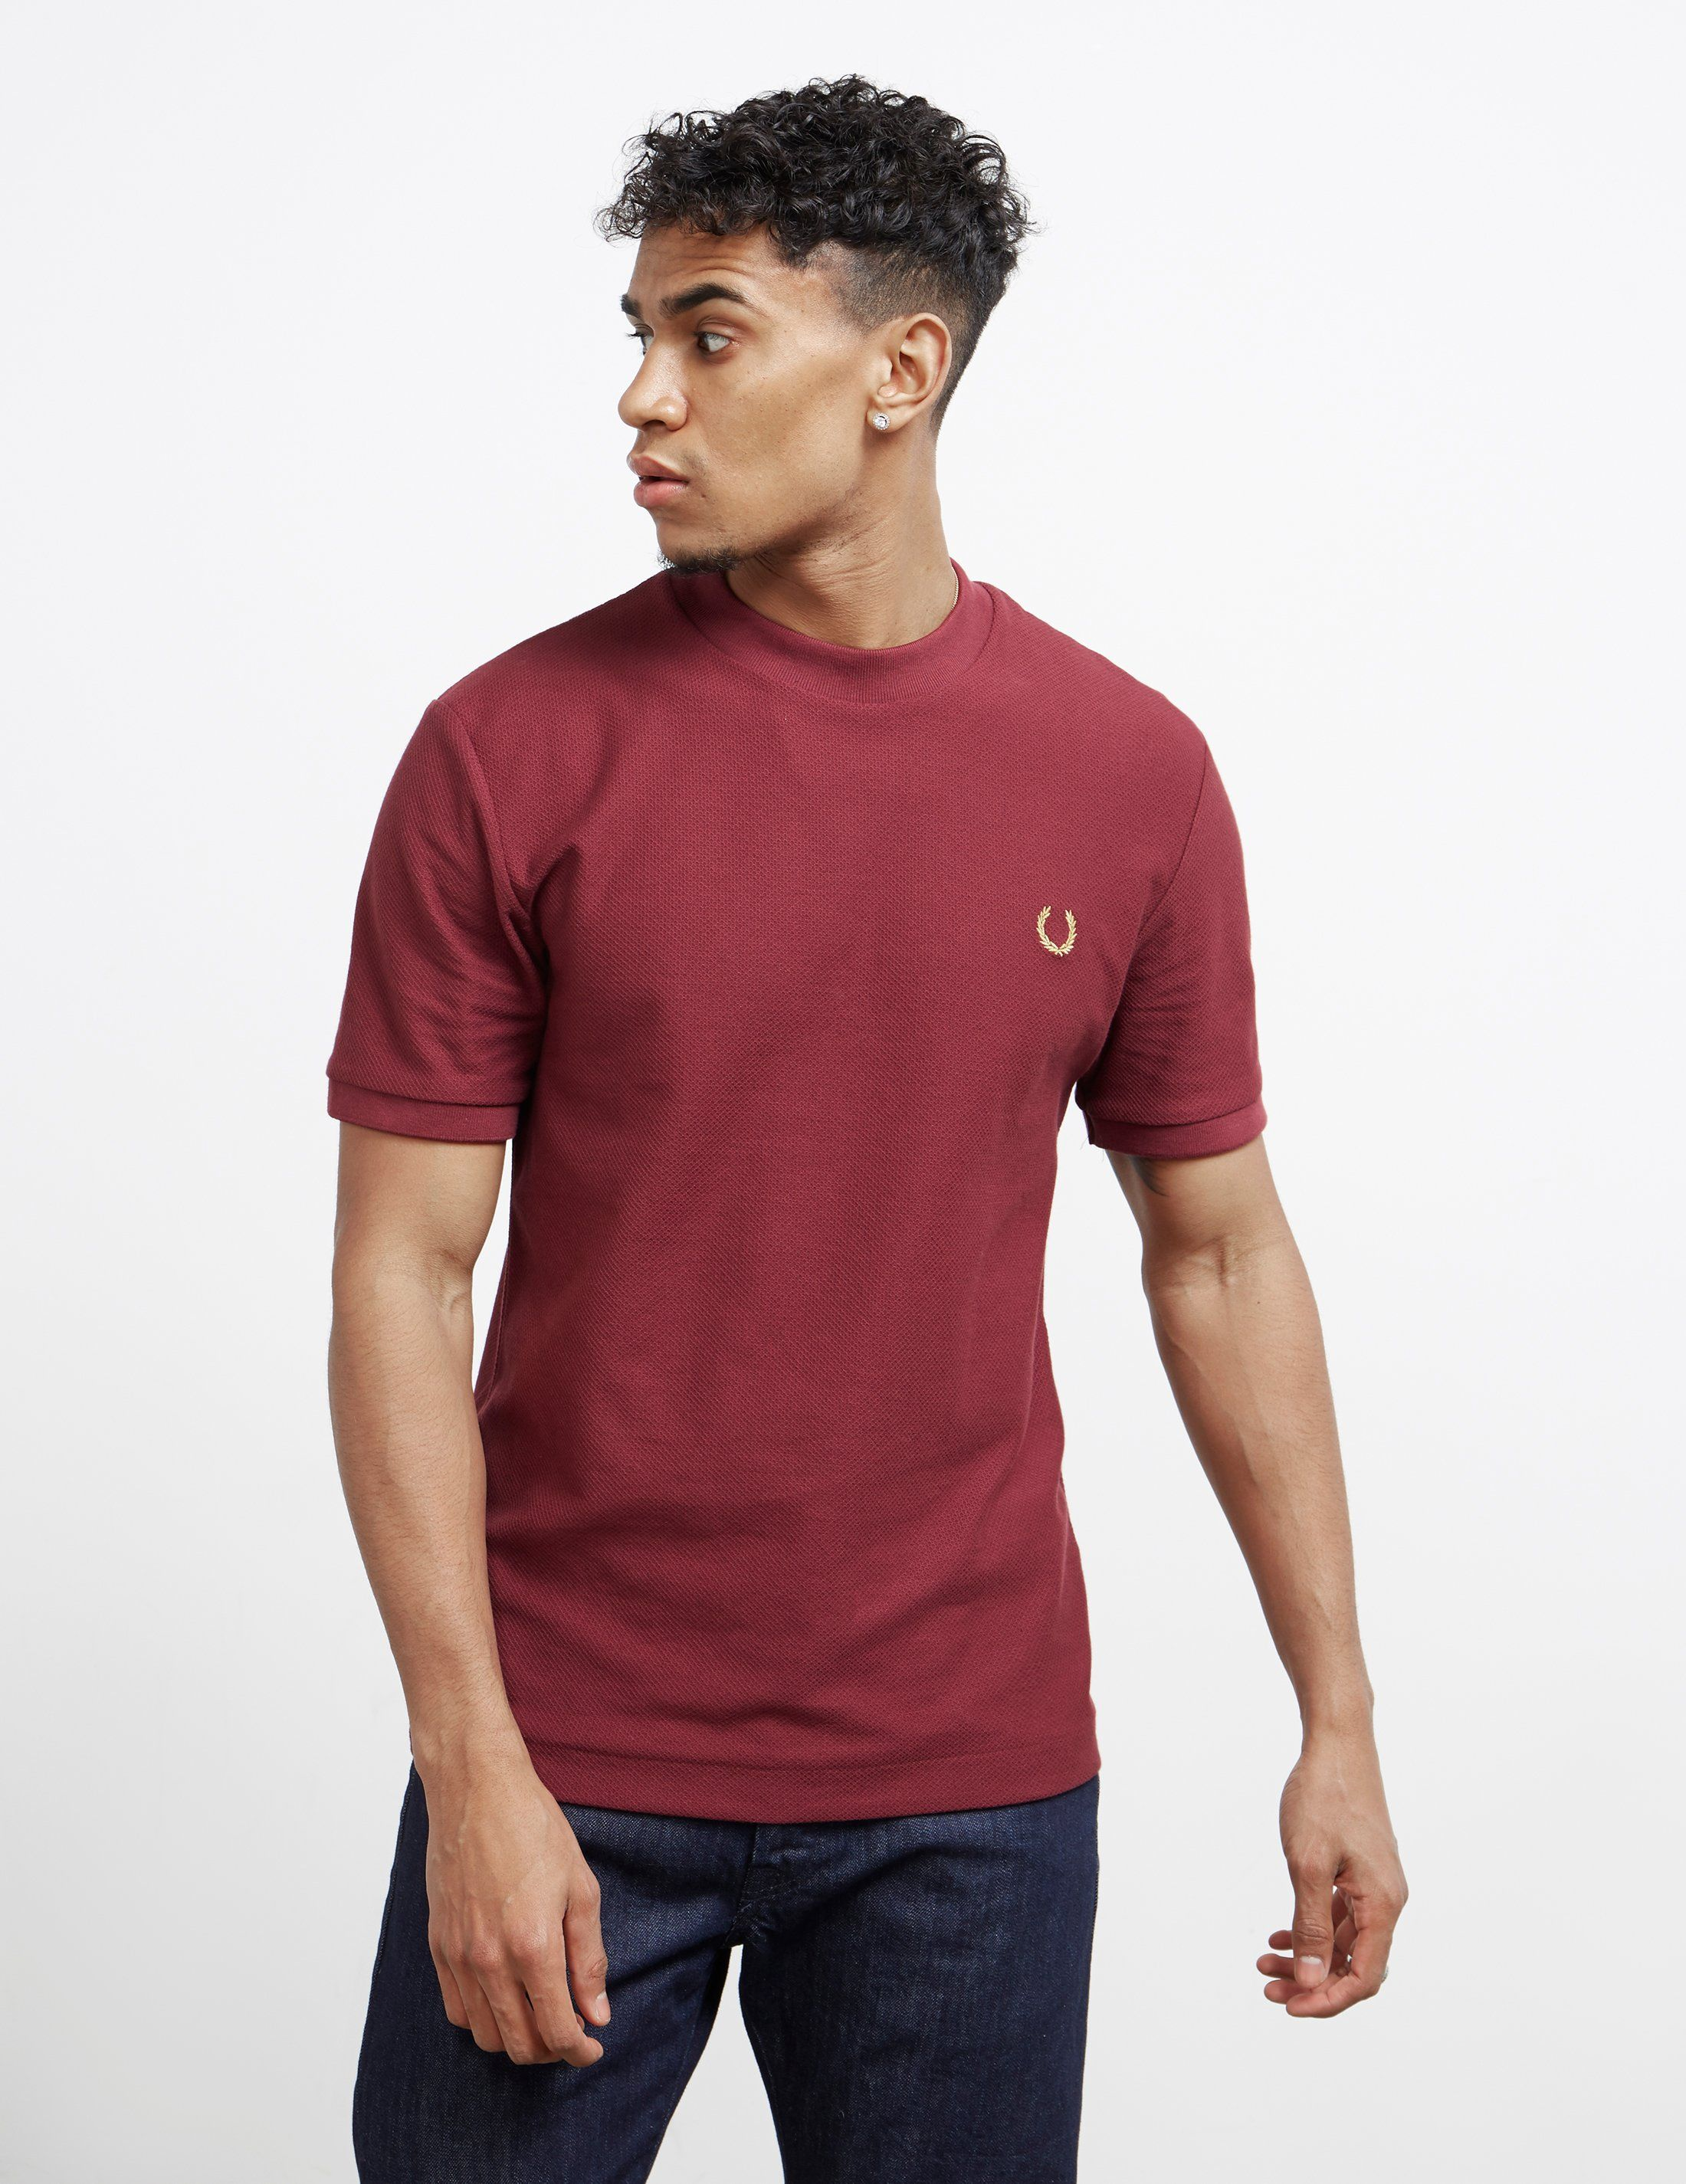 Fred Perry x Miles Kane Short Sleeve Pique T-Shirt